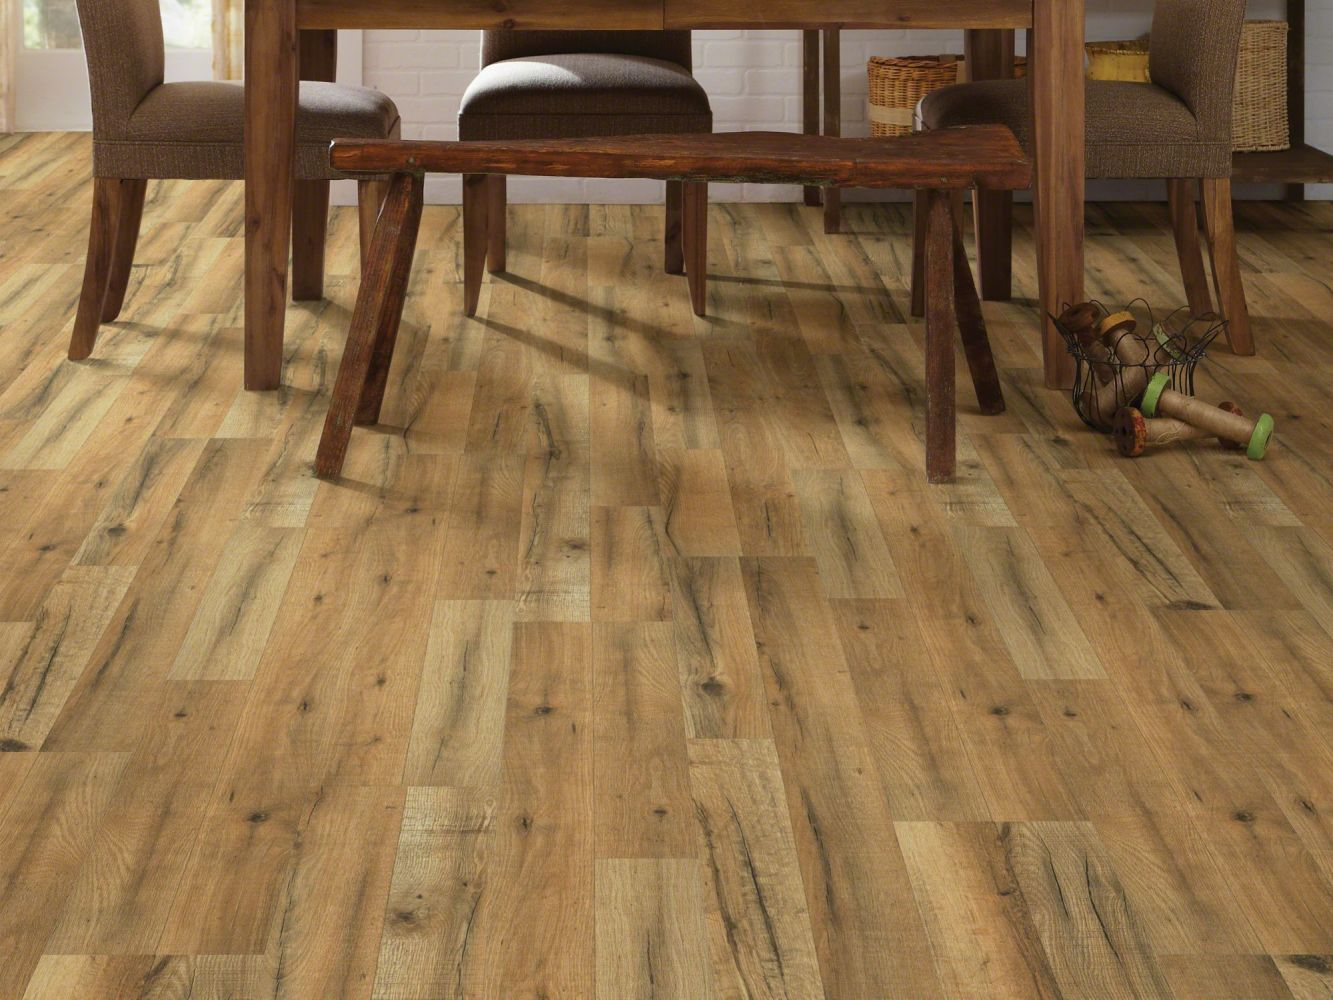 Shaw Floors Versalock Laminate Classic Concepts Orchard Oak 06003_SL111